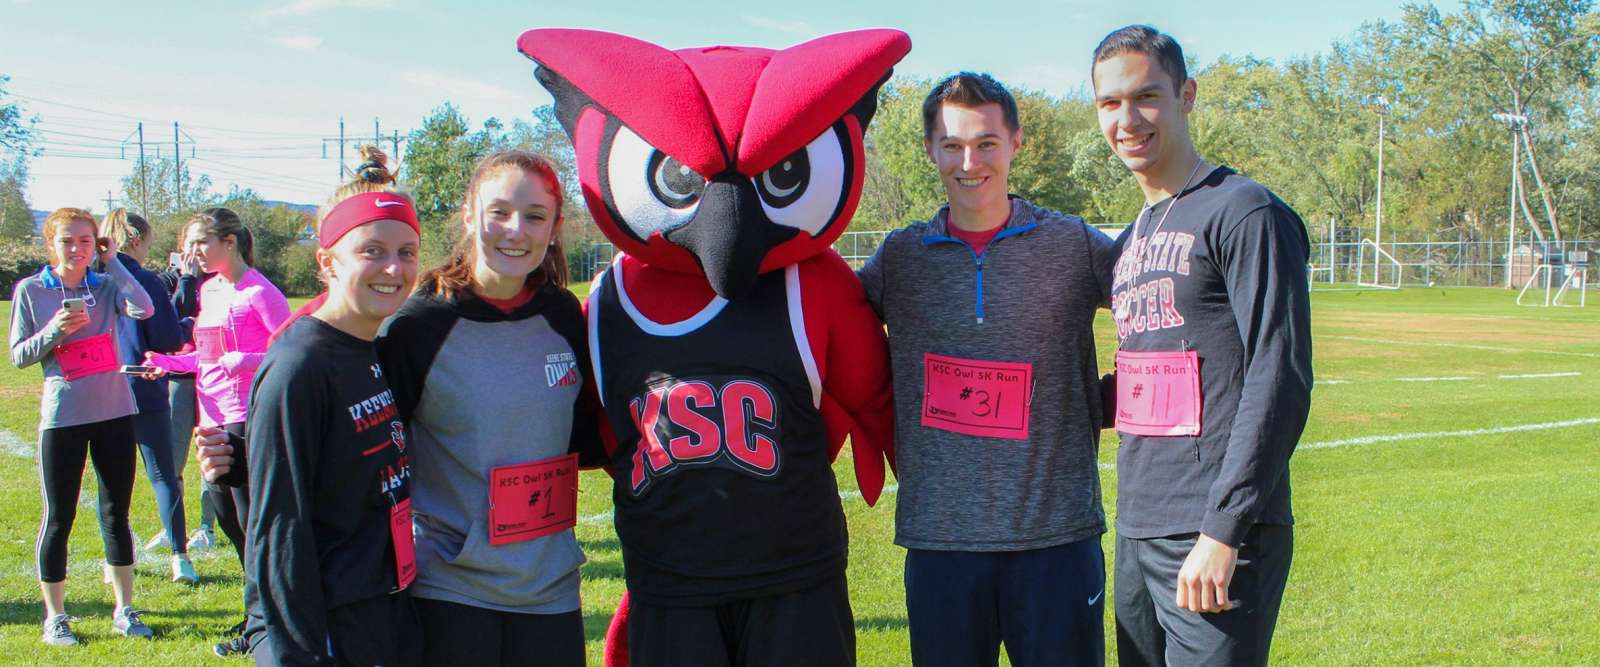 Owl 5k Fun Run